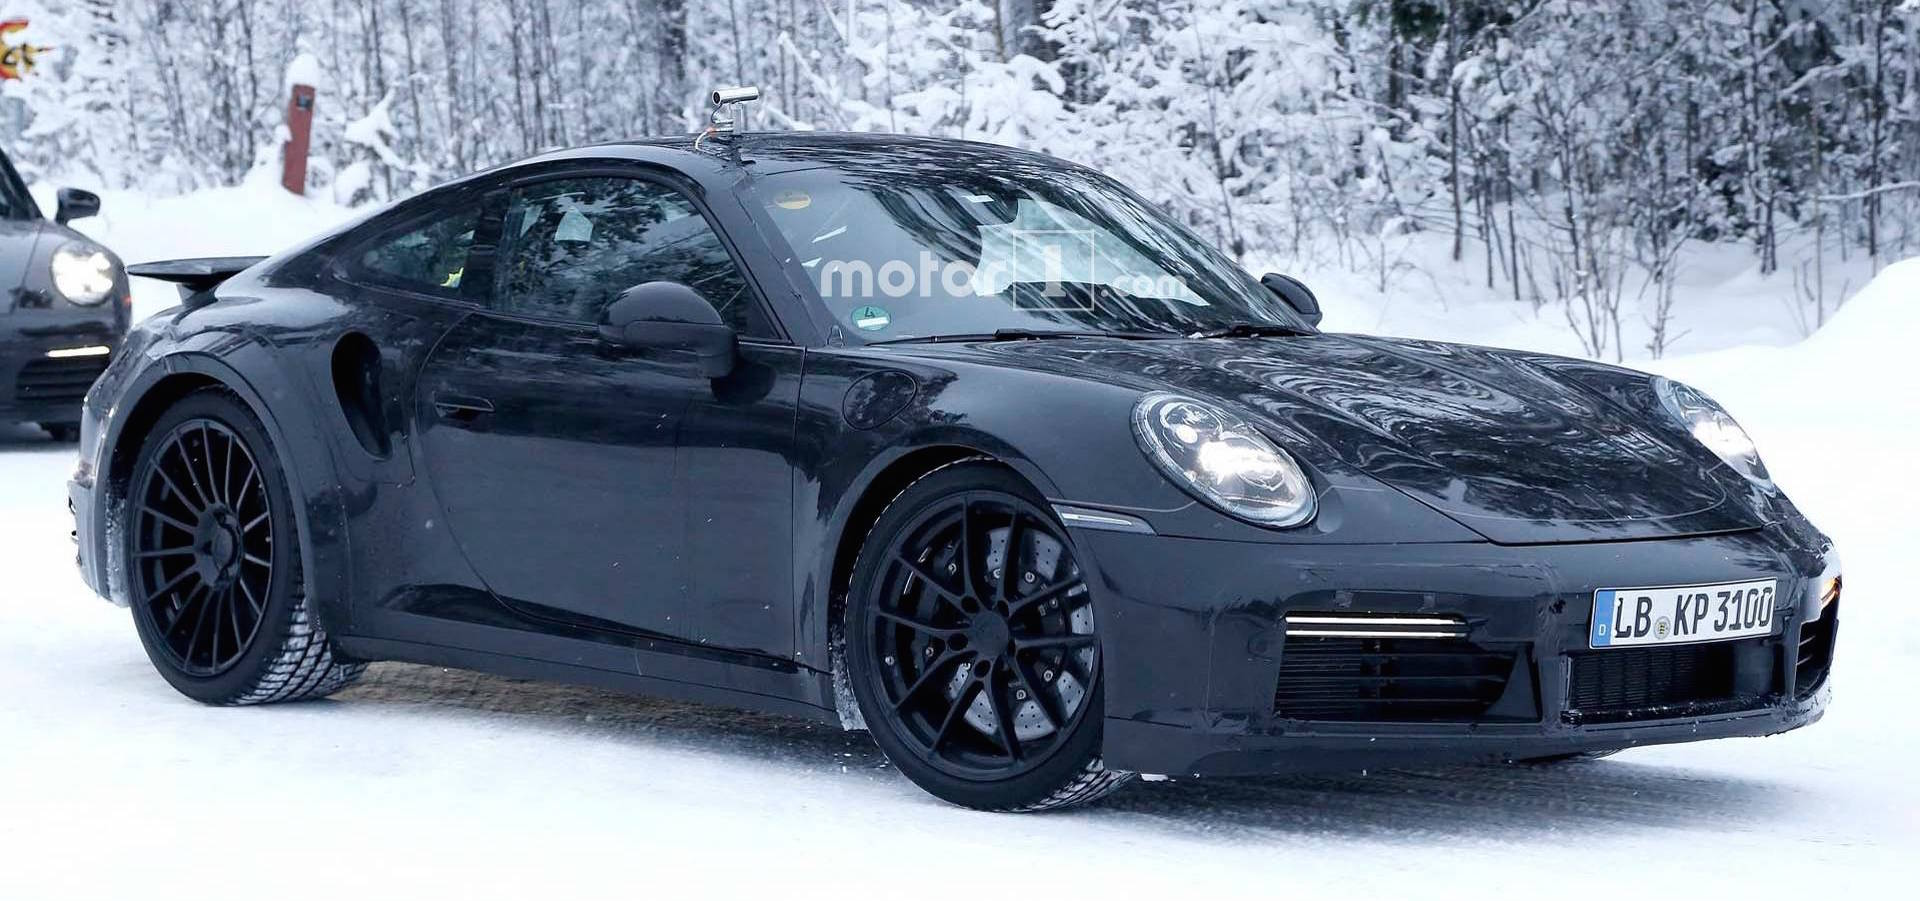 Porsche Spied Testing Mission E And 911 On Snowy Road